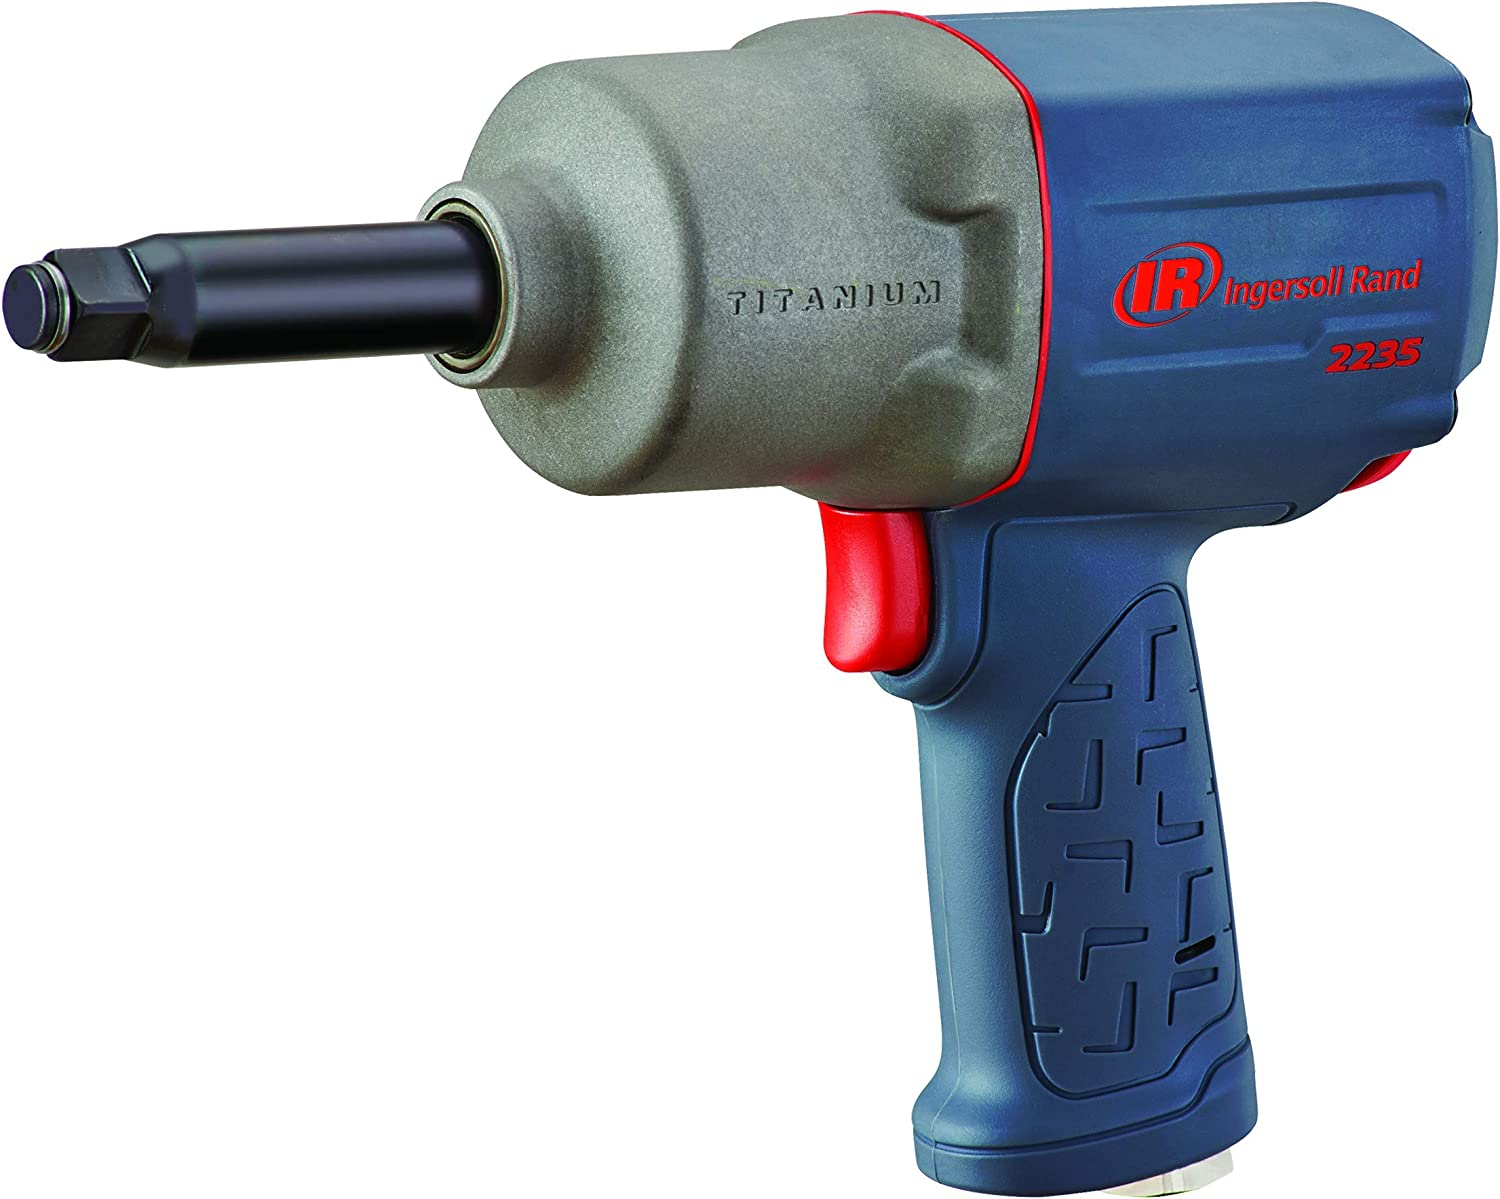 Ingersoll Rand 2235TiMAX-2 1/2-Inch Drive Extended Anvil Air Impact Wrench